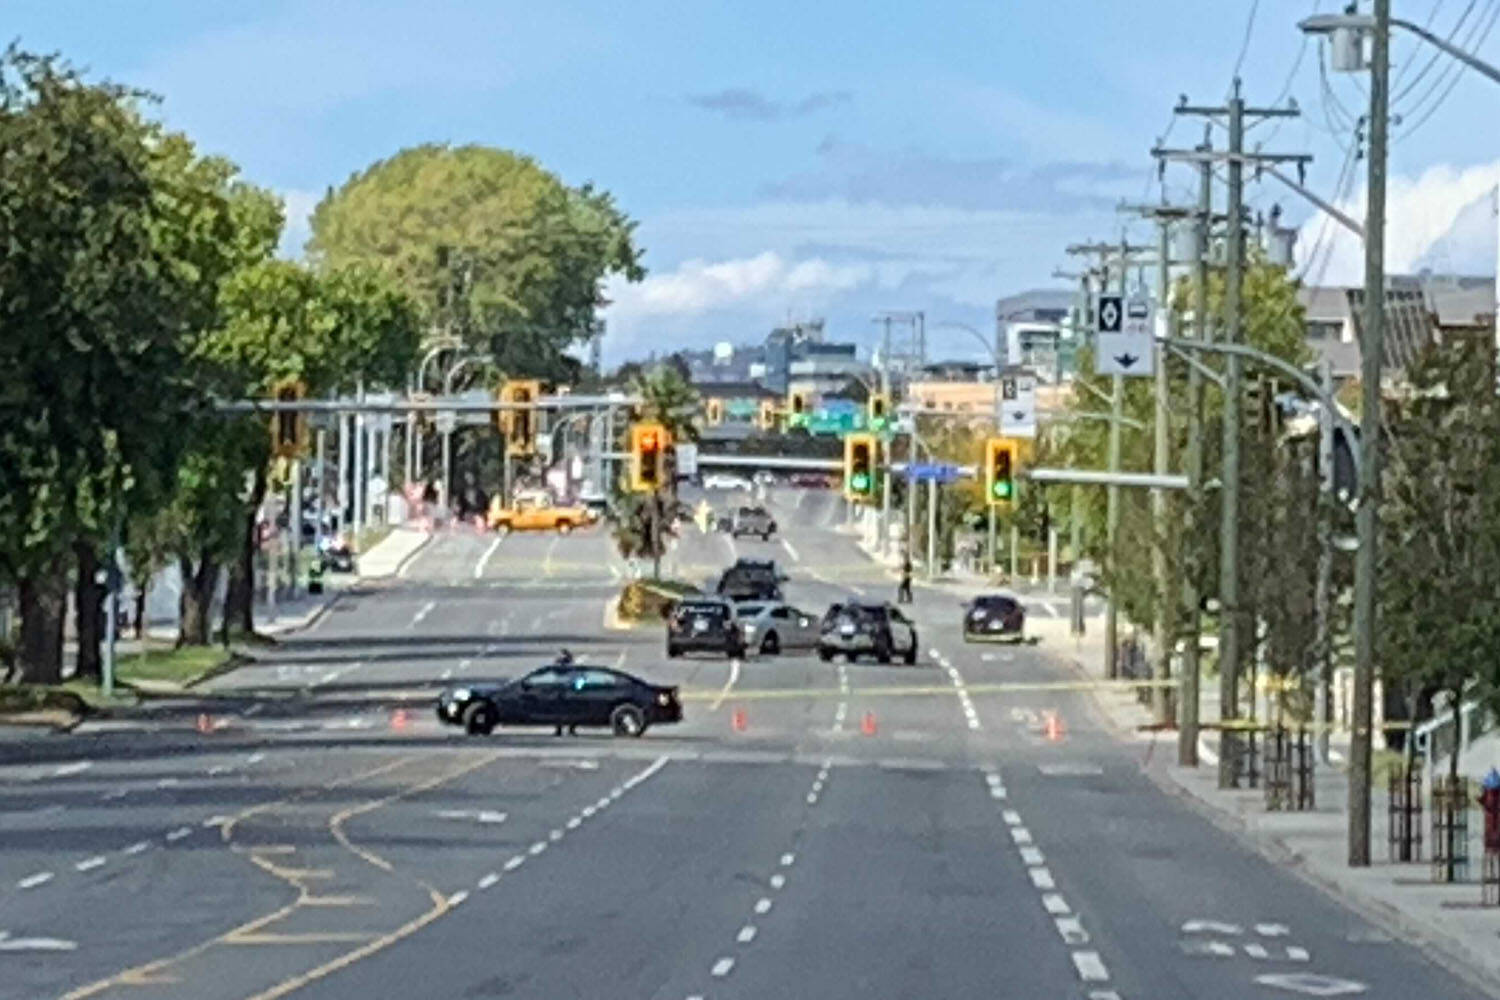 The intersection of Douglas Street and Tolmie Avenue was the scene of a police incident at the border between Victoria and Saanich Sept. 12 where a man was shot dead by police. (Kiernan Green/News Staff)